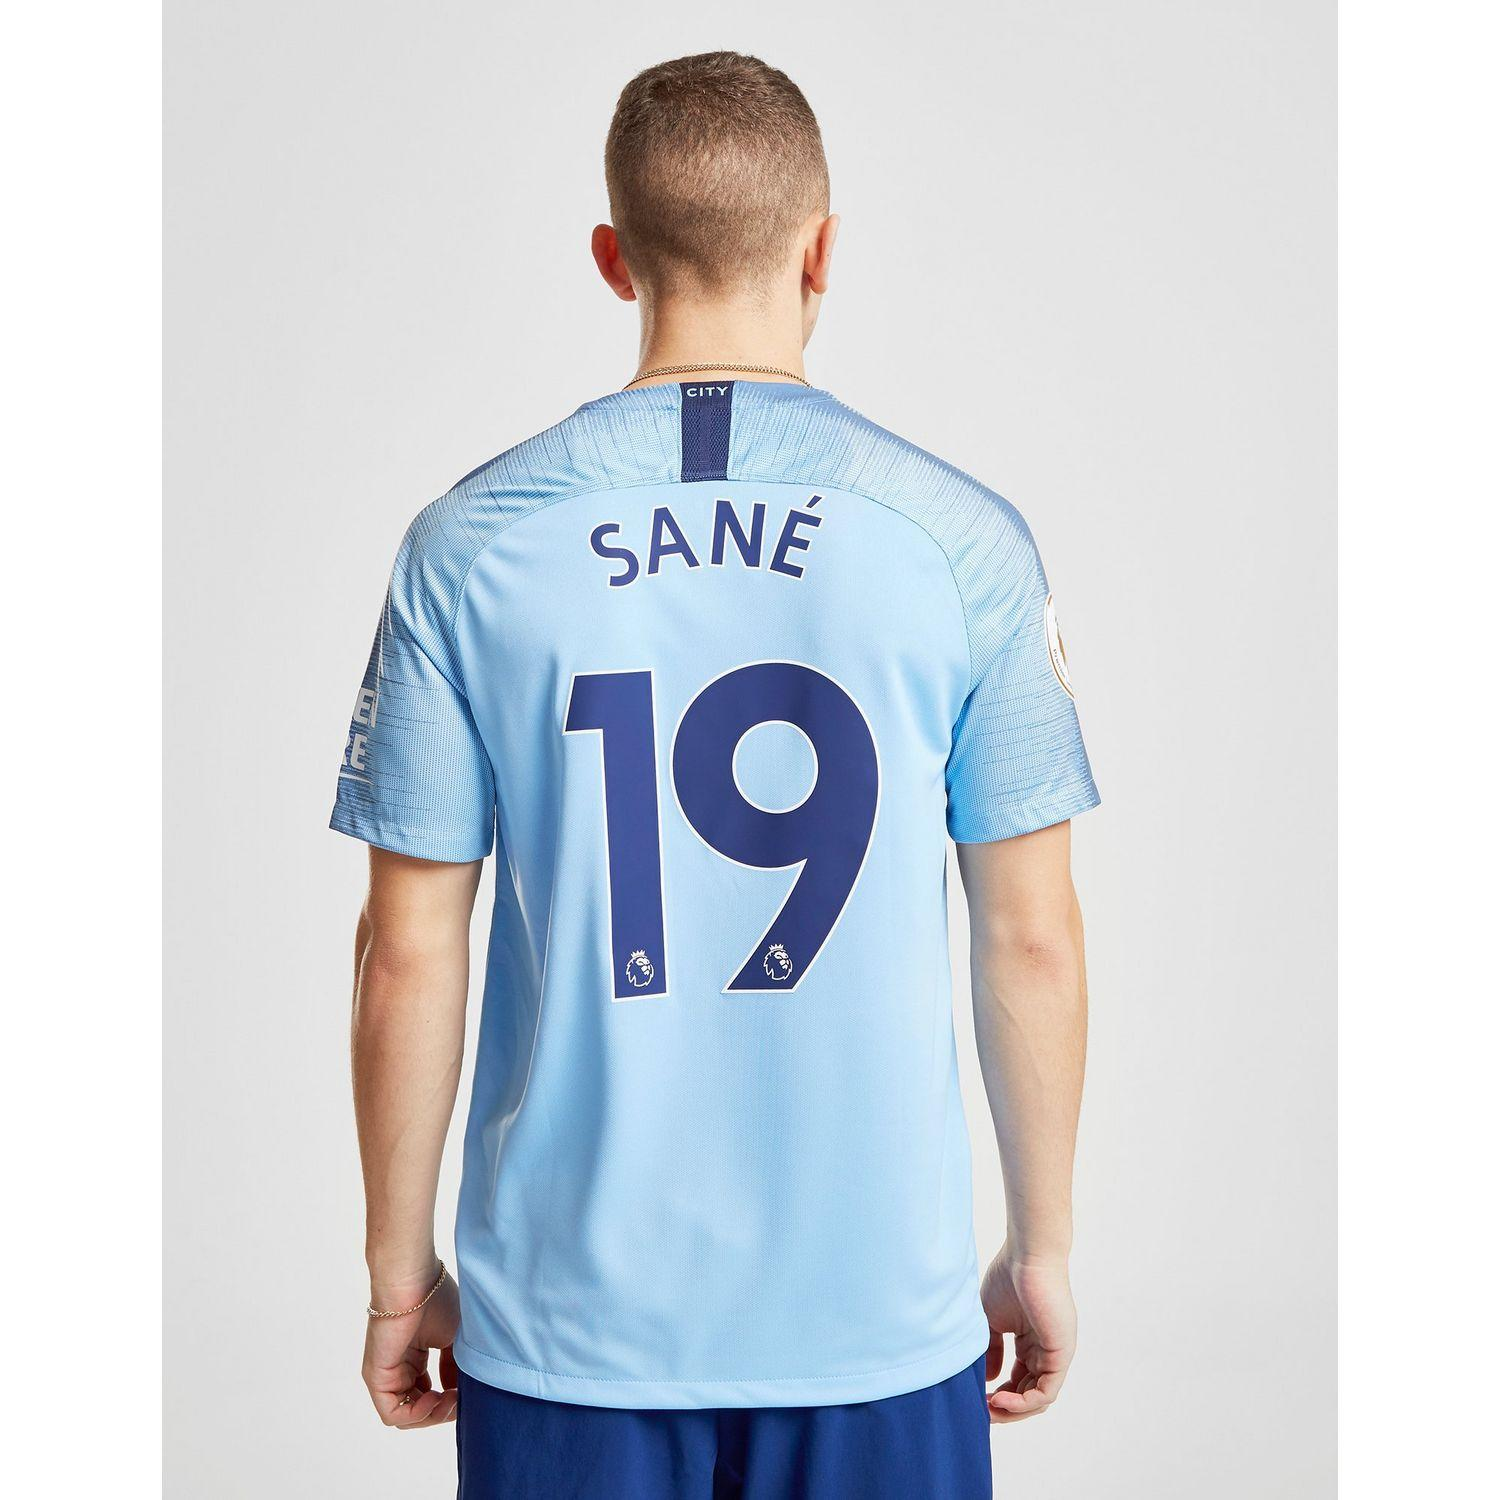 competitive price 0bfcc bba37 Men's Blue Manchester City Fc 2018/19 Sane #19 Home Shirt